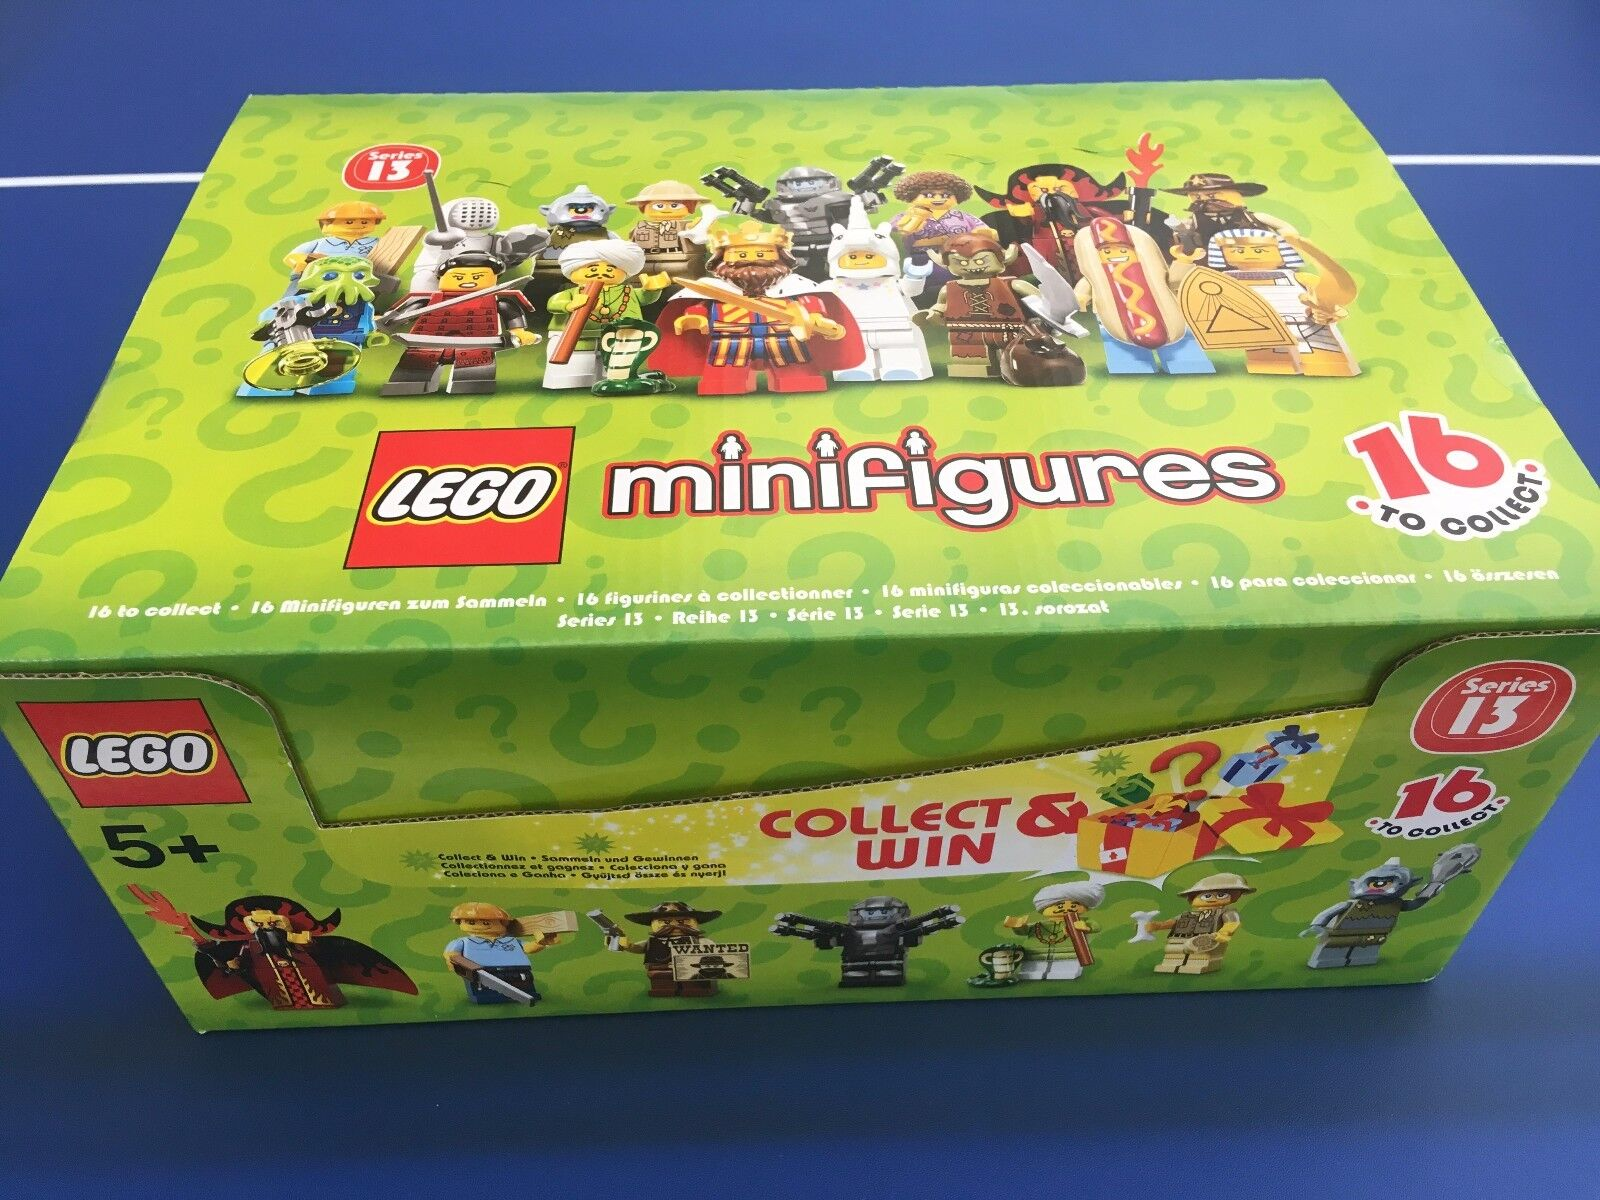 LEGO 71008 SERIES 13 BRAND NEW SEALED BOX OF 60 MINIFIGURES.rotUCED